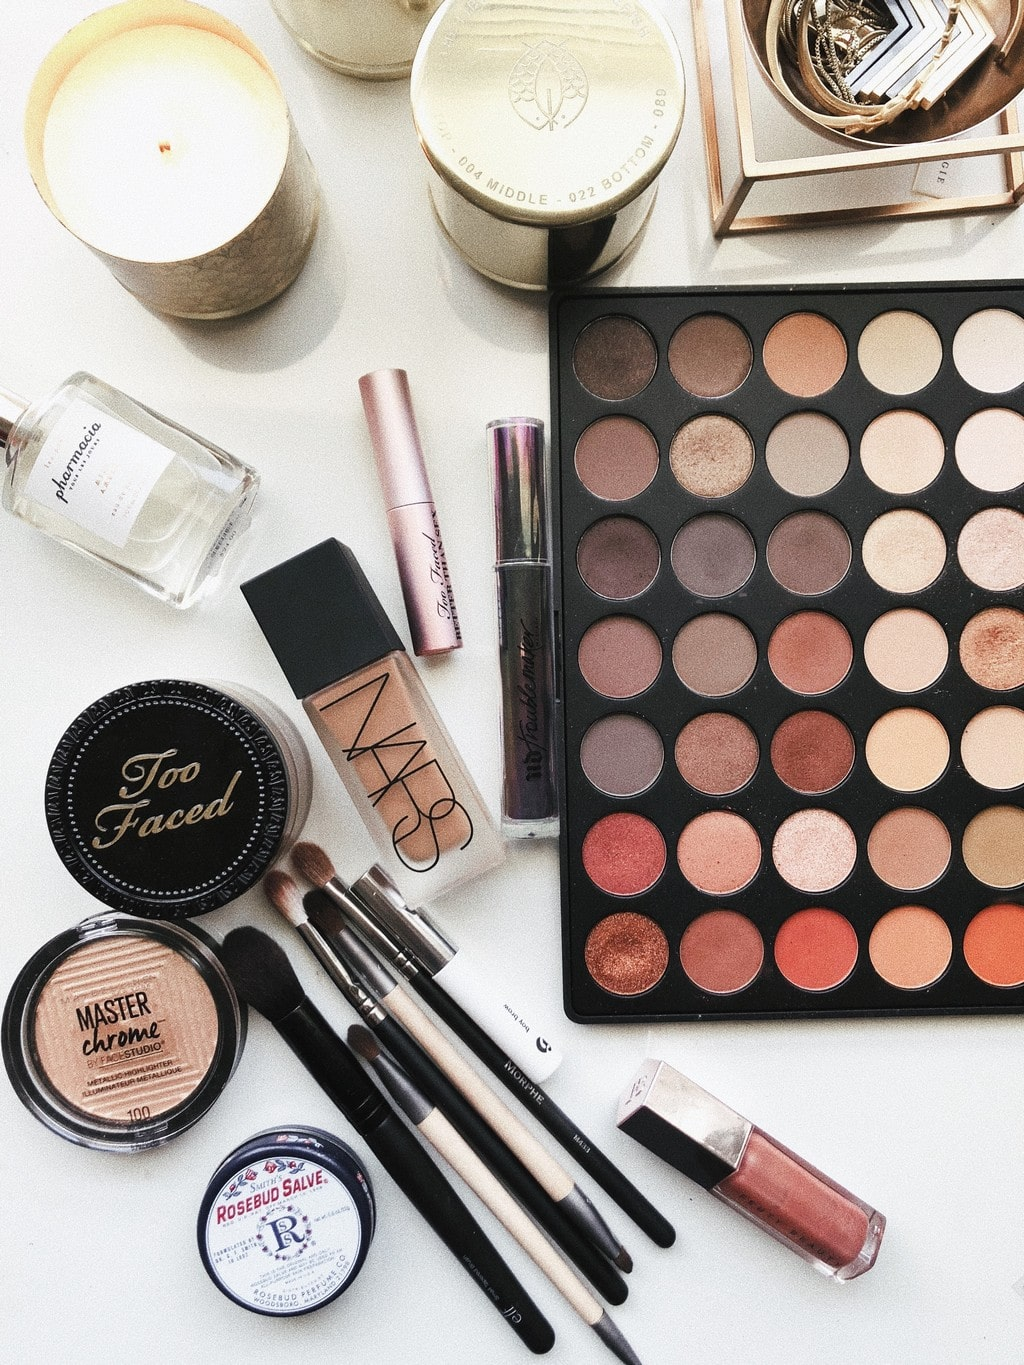 a range of expensive designer makeup products including an eyeshadow palette, lip gloss and foundation.